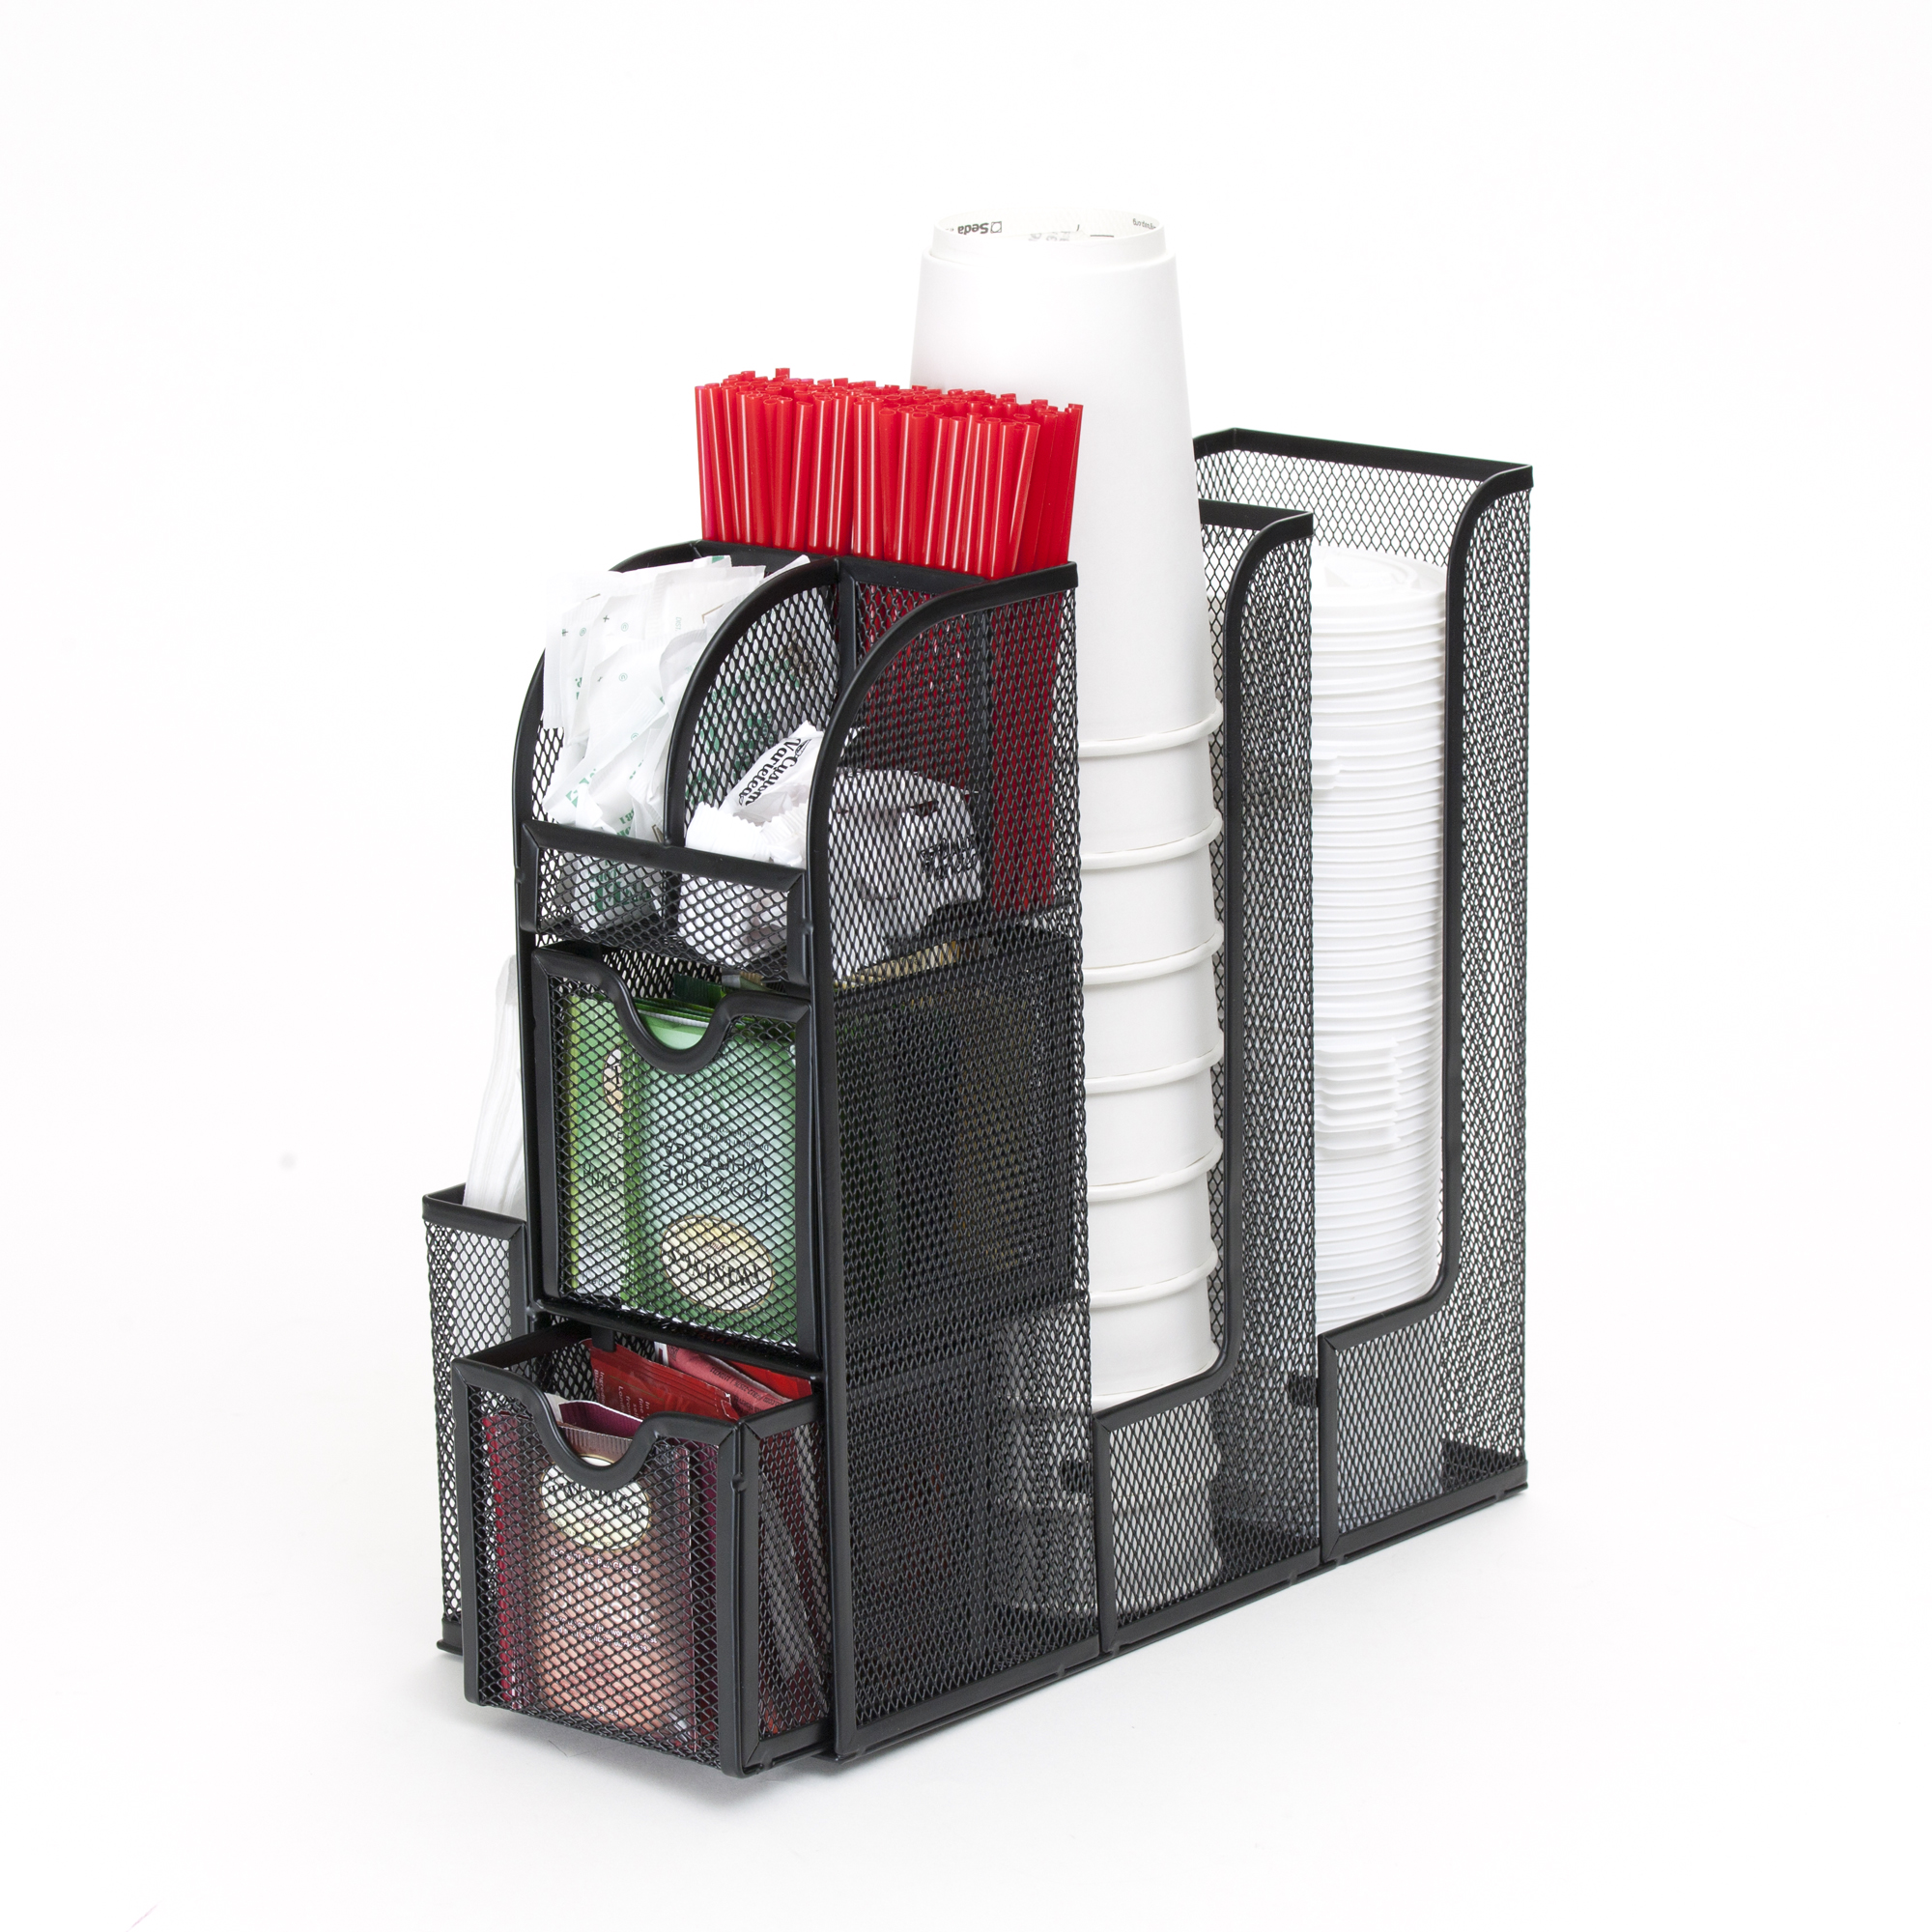 Mind Reader Coffee Condiment and Accessories Caddy Organizer, For Coffee Cups, Stirrers, Snacks, Sugars, etc. Black Mesh